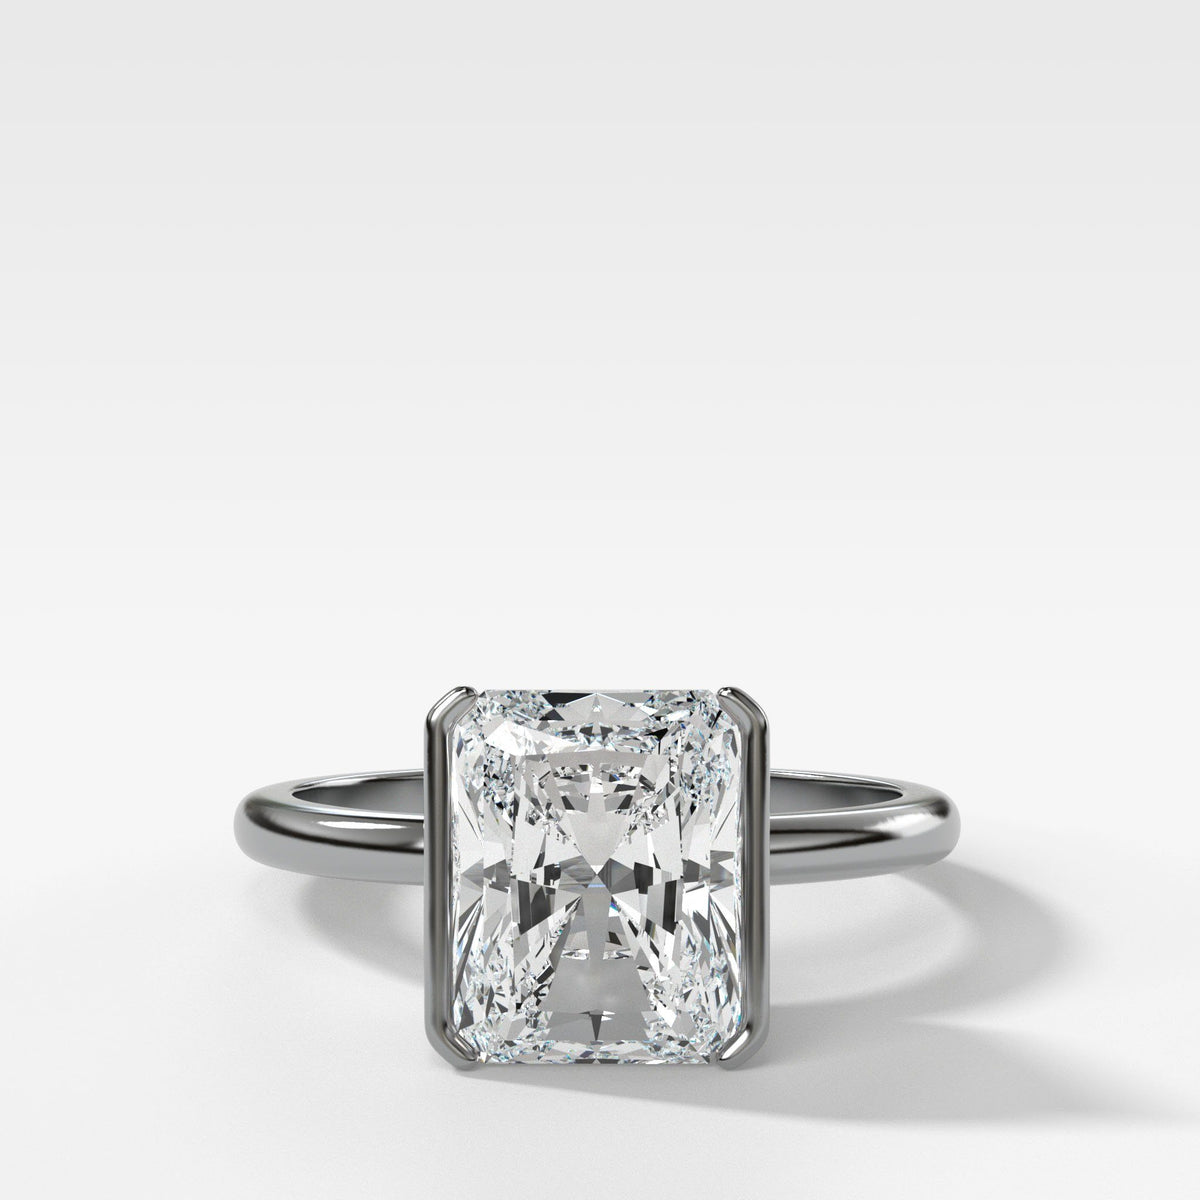 Half Bezel Solitaire Engagement ring with Elongated Radiant Cut in White Gold by Good Stone